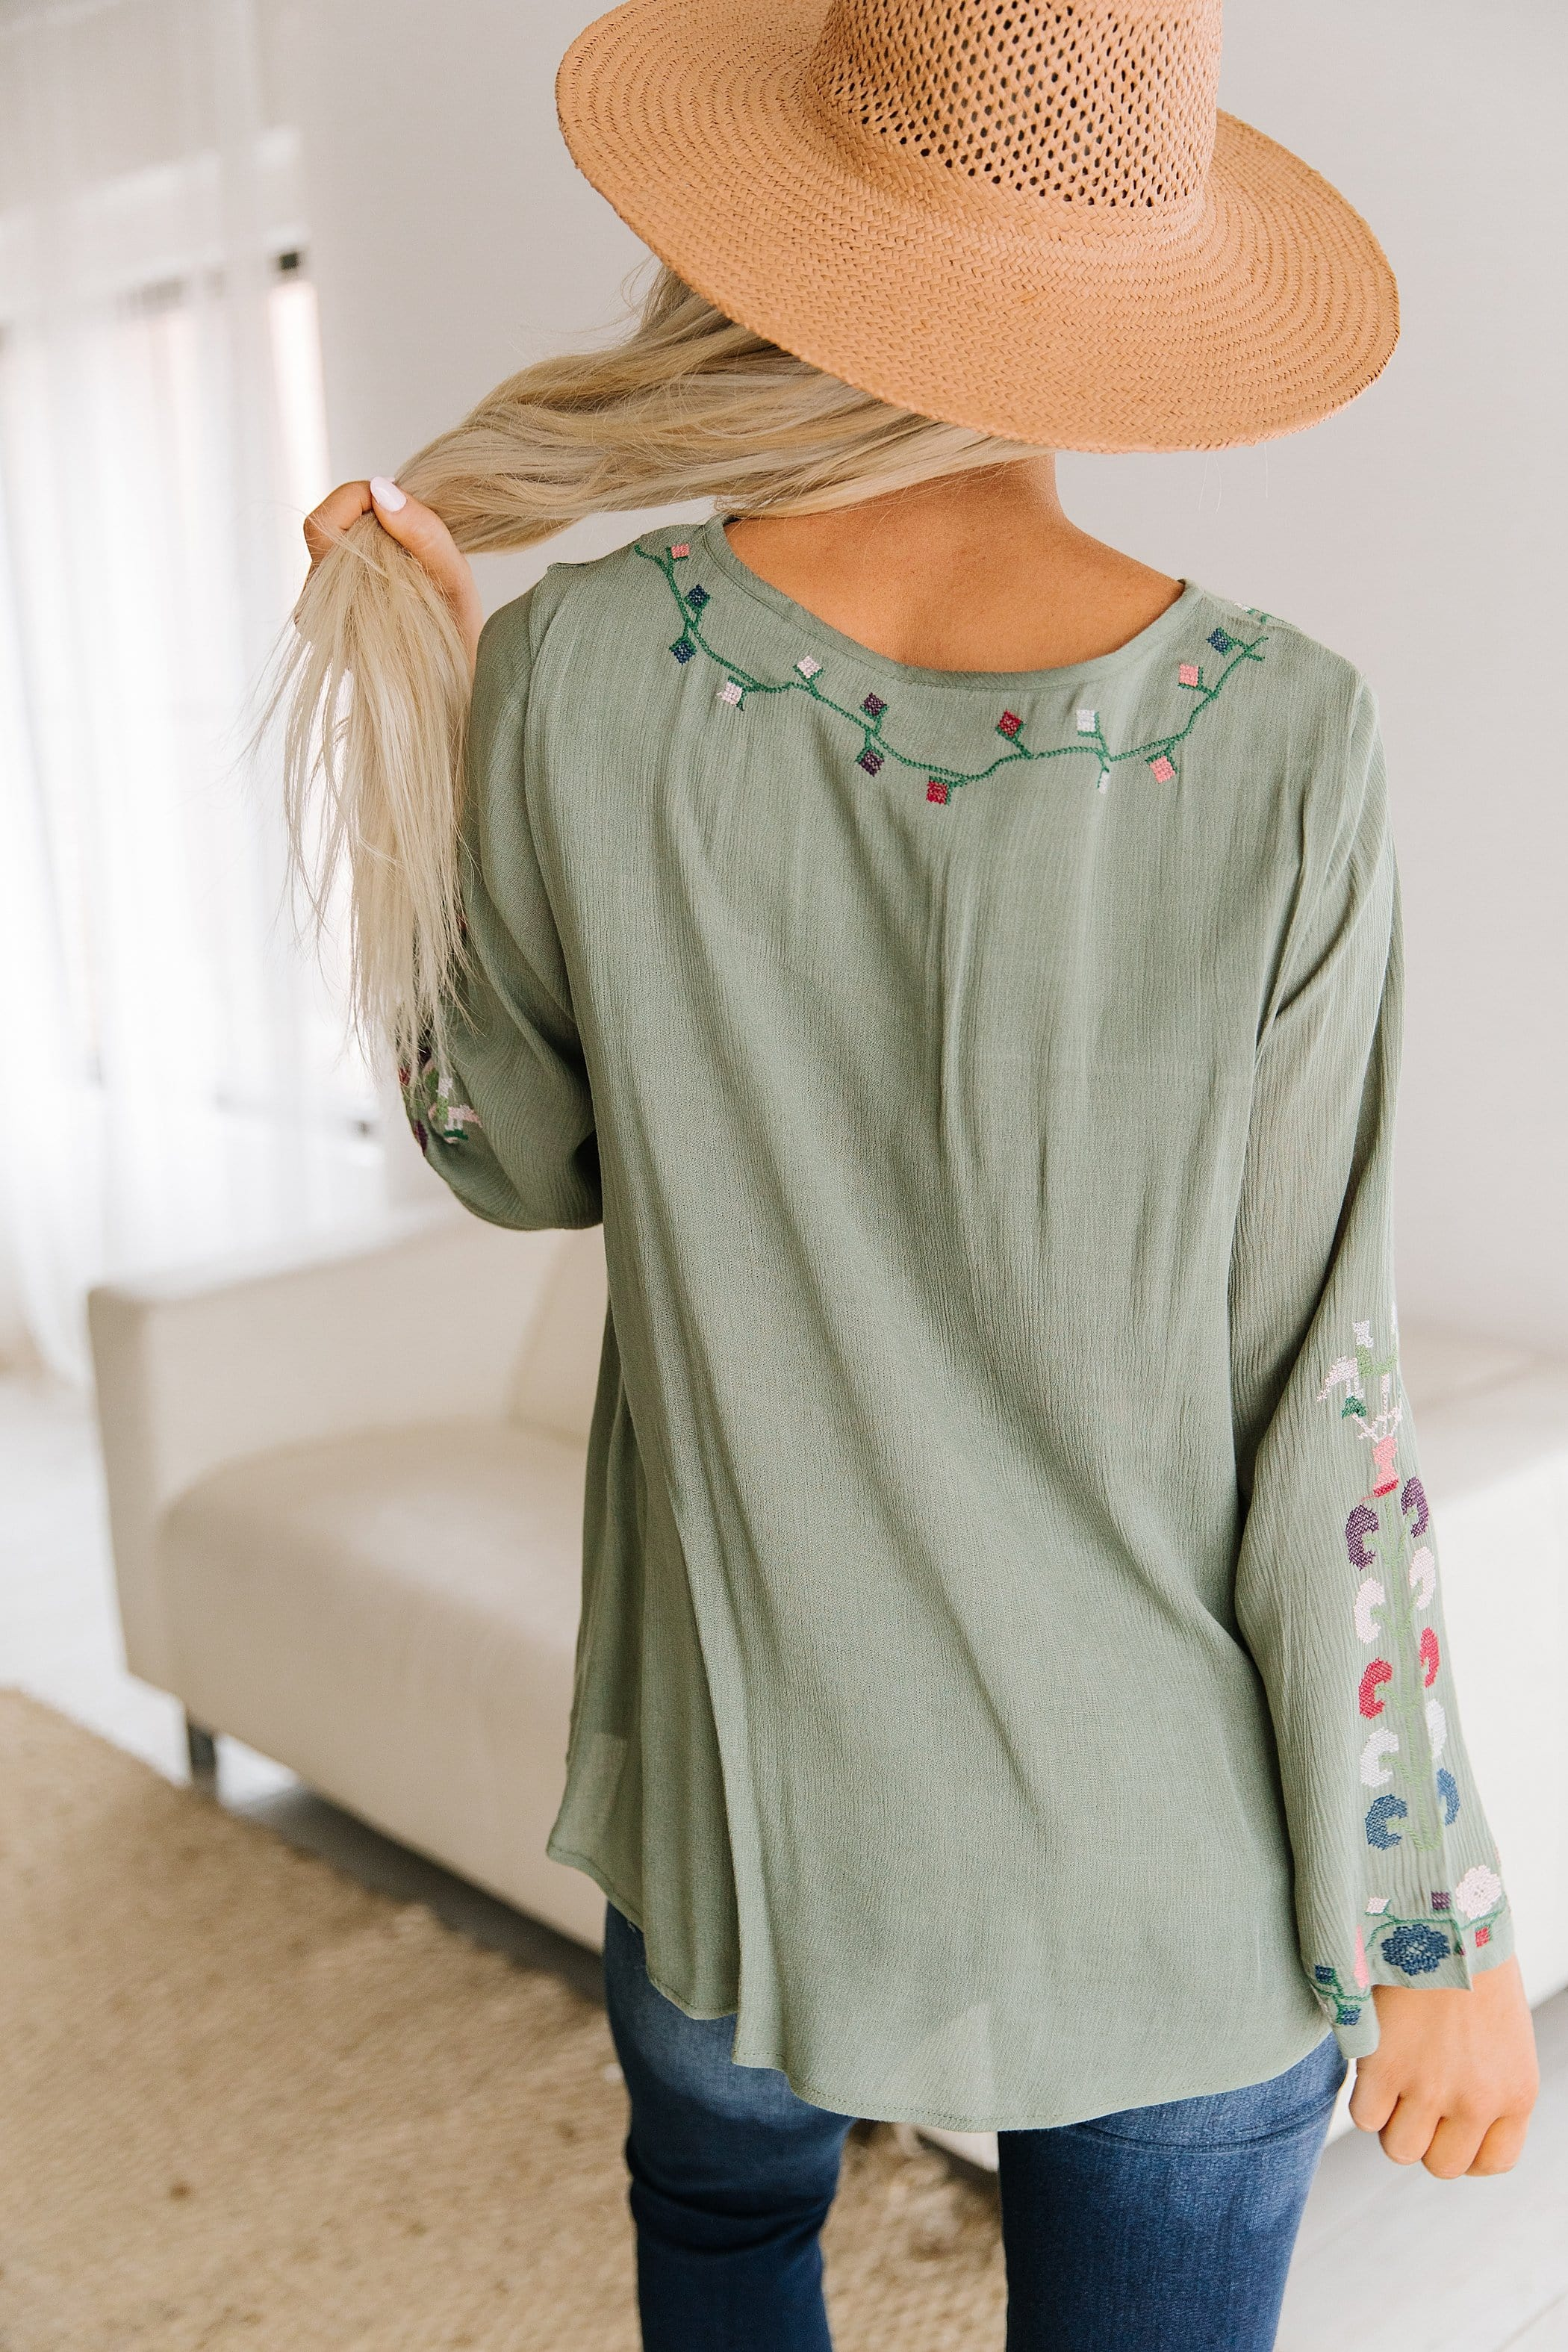 The Bullock Embroidered Top in Sage